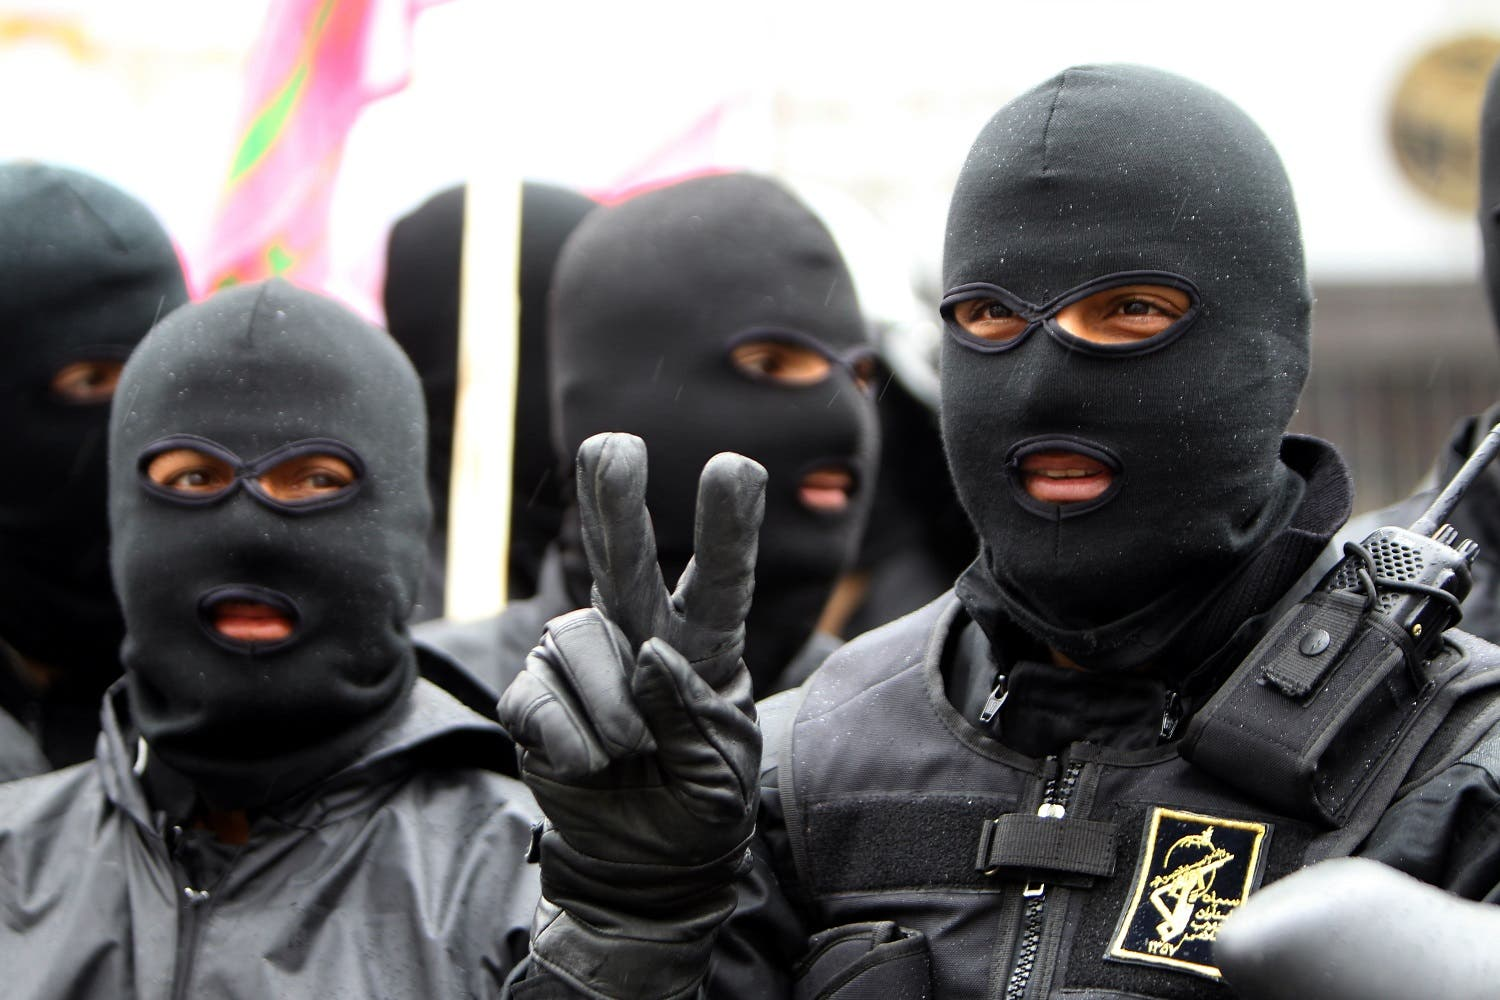 Masked members of Iran's paramilitary Basij militia parade in front of the former US embassy in Tehran on November 25, 2011 to mark the national Basij week. (AFP)